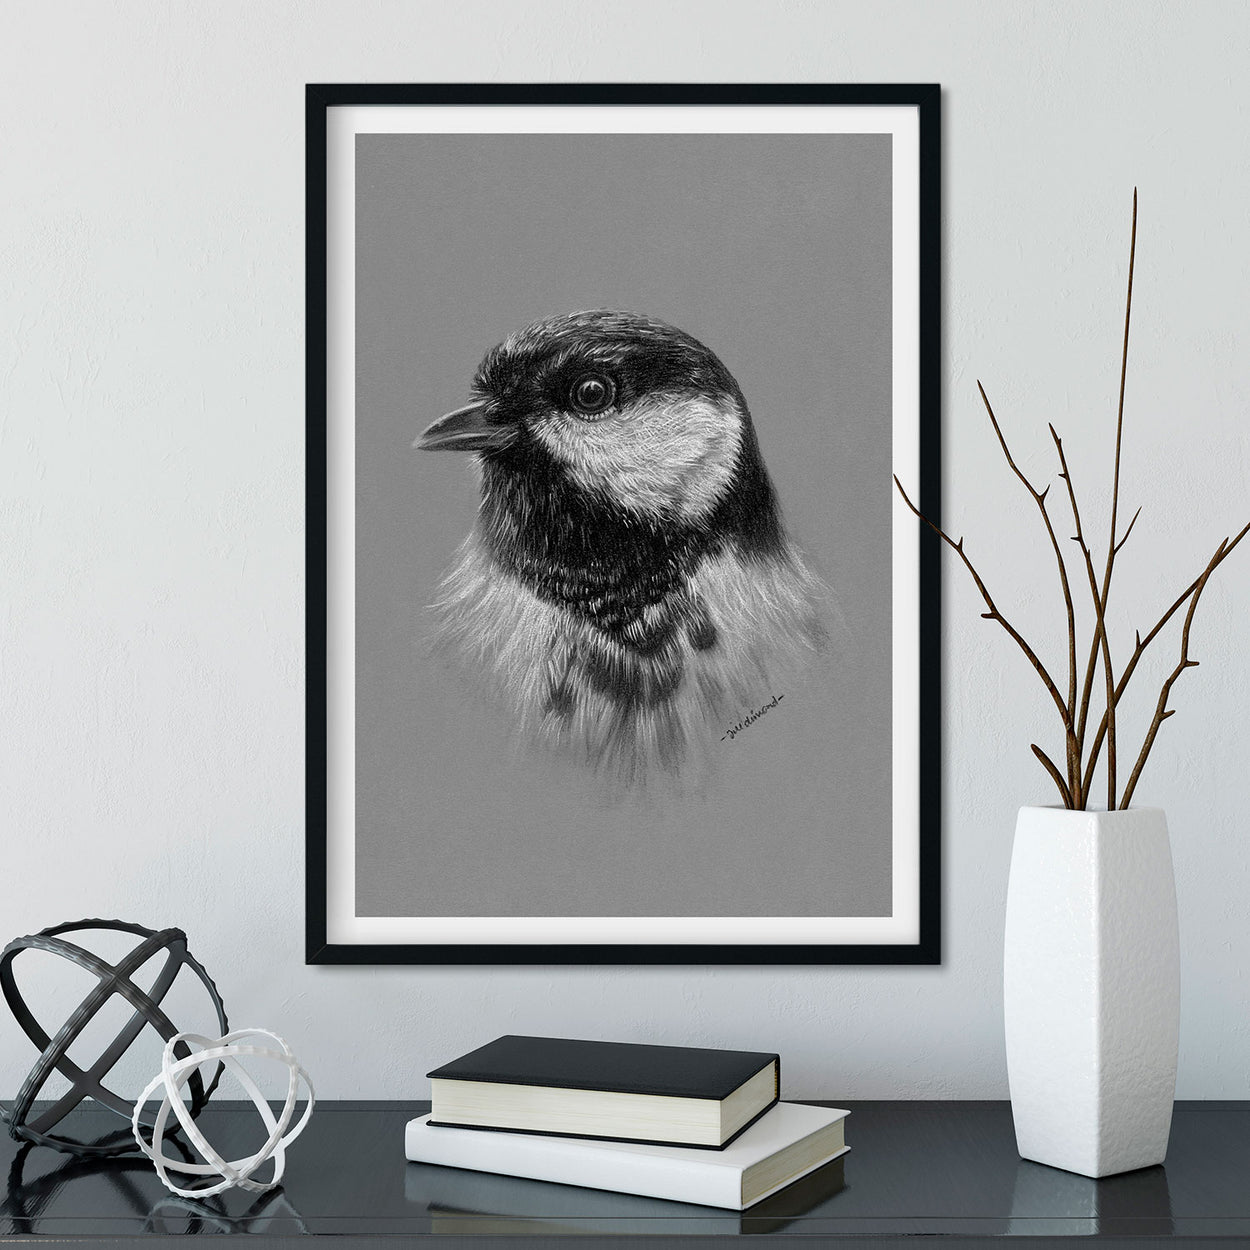 Great Tit Garden Bird Wall Art in Frame - The Thriving Wild - Jill Dimond